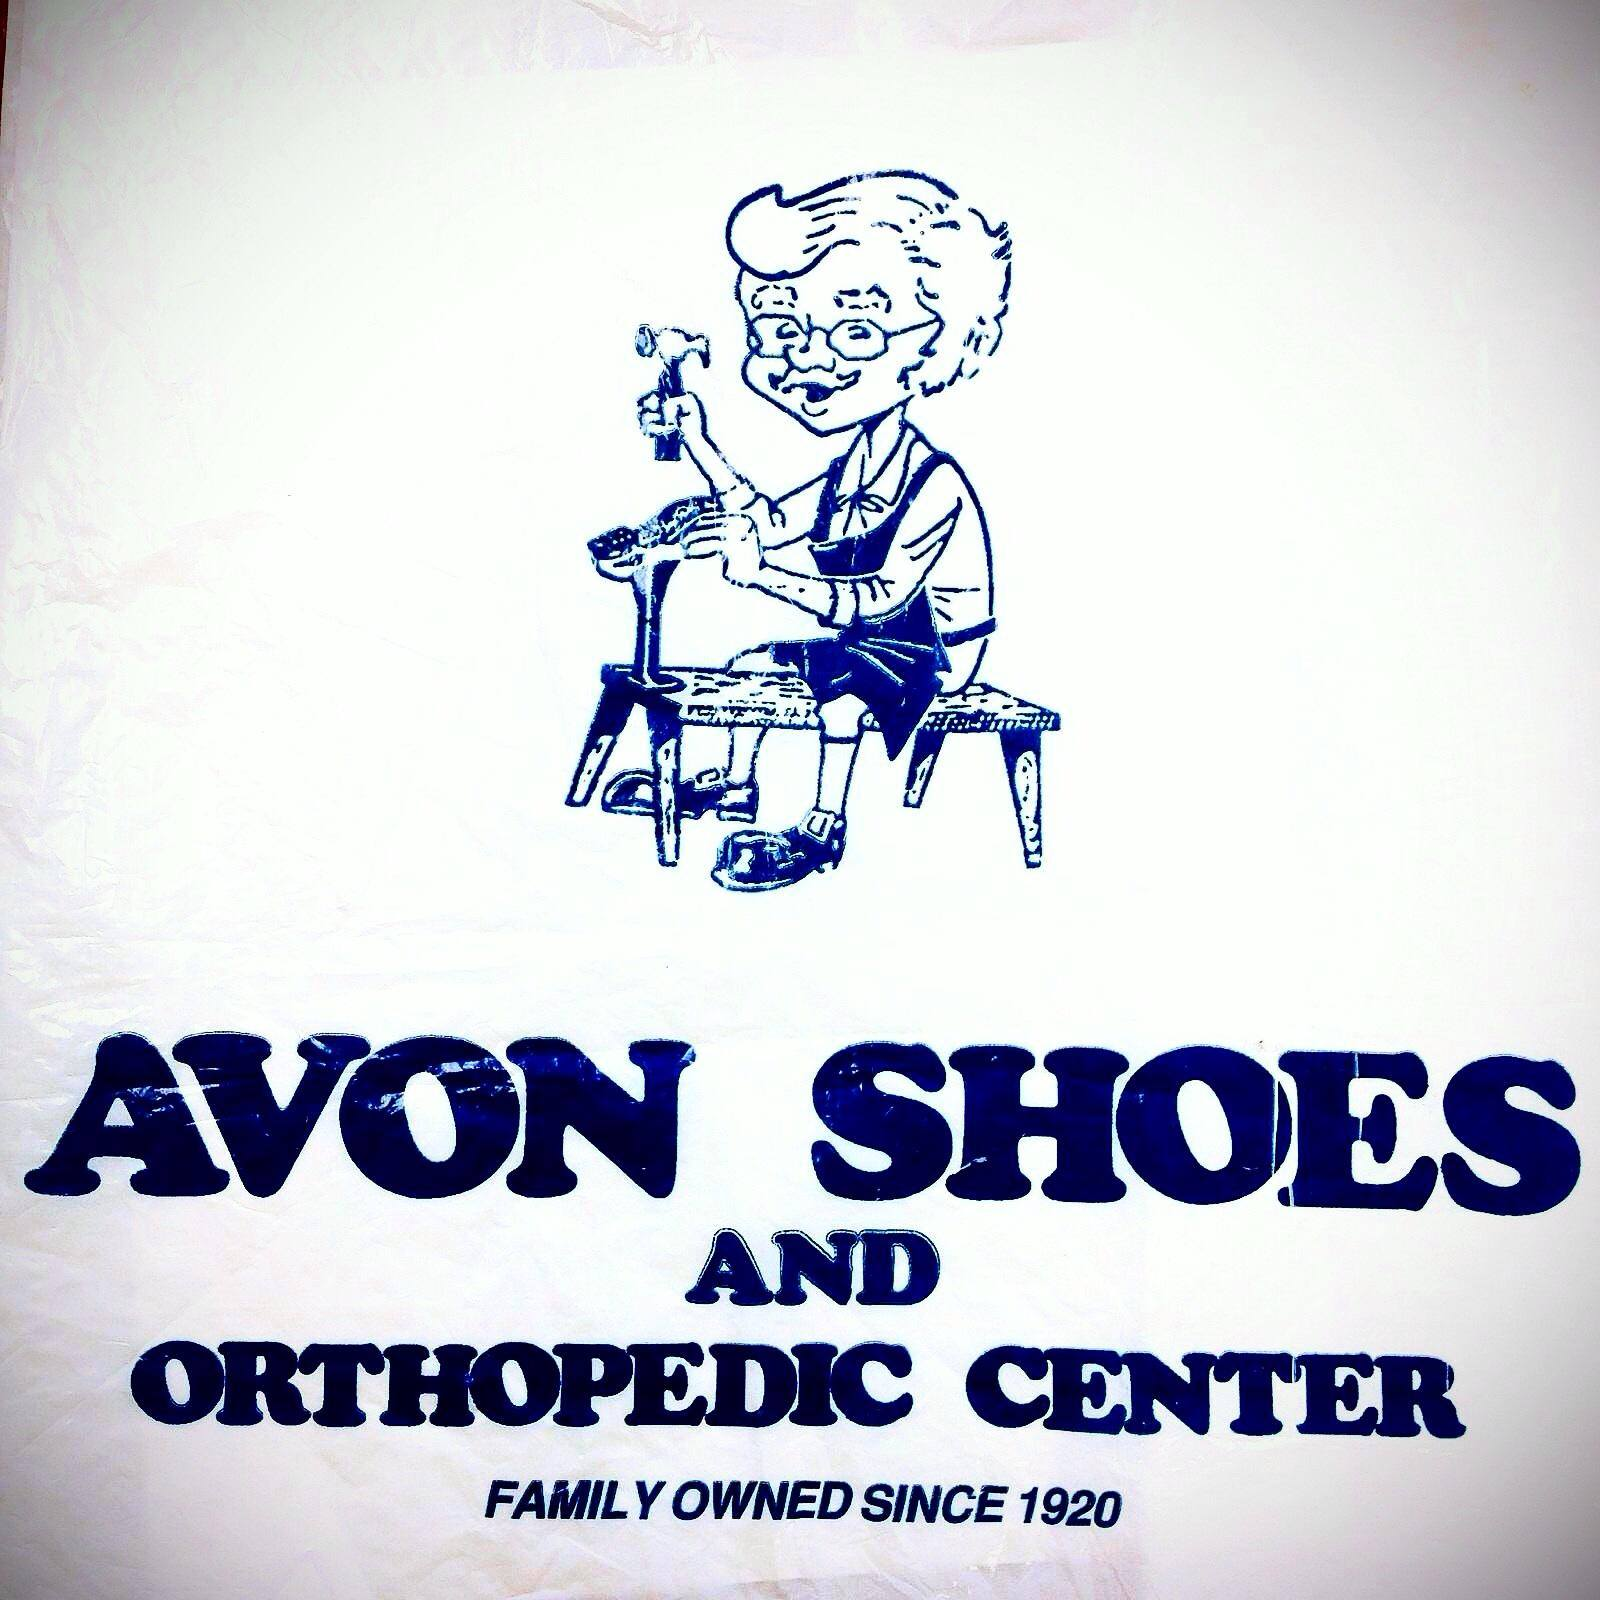 GIFT CERTIFICATES <br/> Donated by: AVON SHOES & ORTHOPEDIC CENTER <br/> Valued at: $50